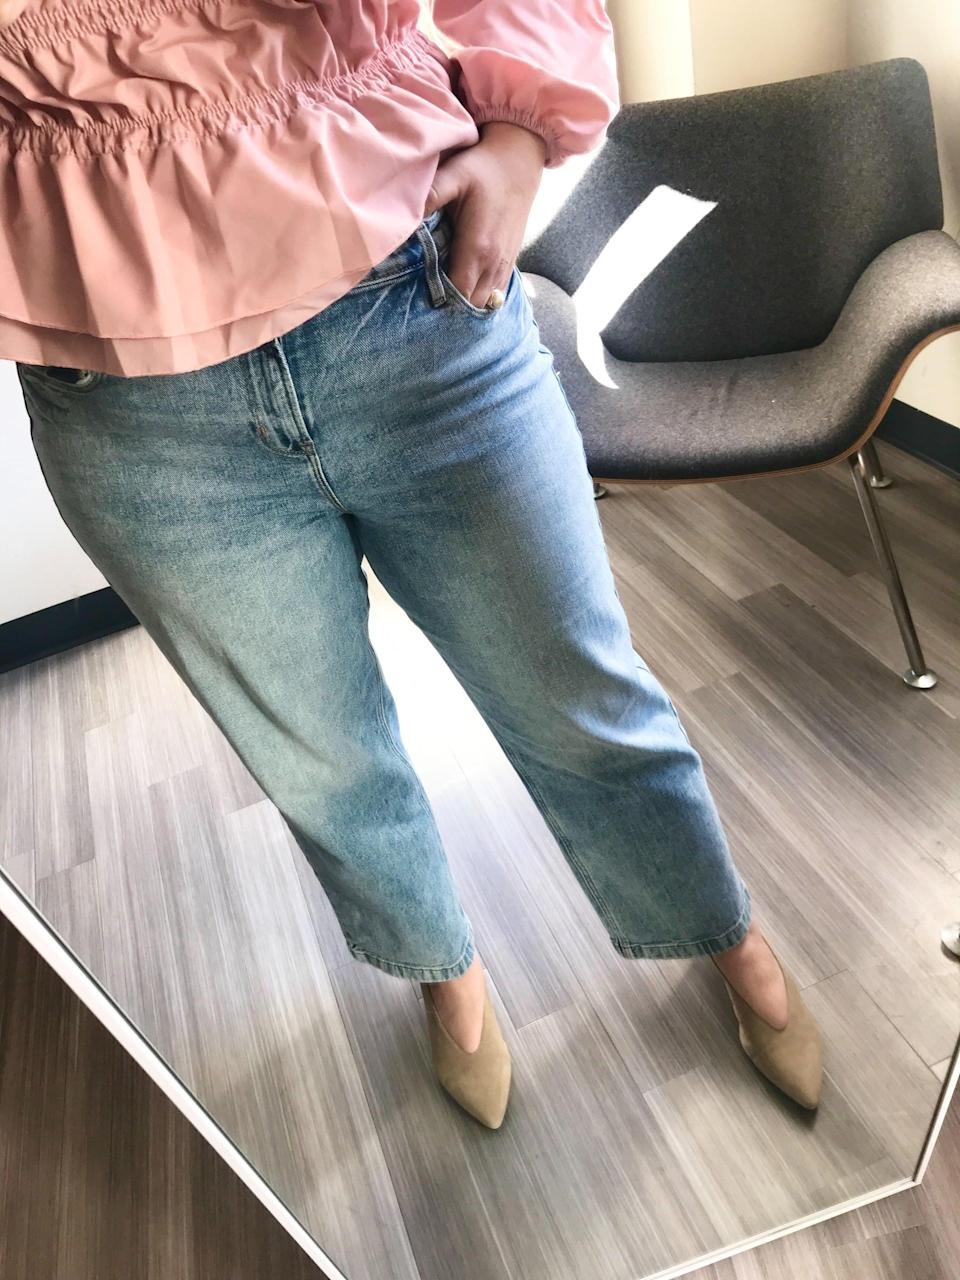 """<p><strong>The item:</strong> <span>Old Navy High-Waisted Light Stone-Washed Slim Wide-Leg Jeans</span> (Sold Out) </p> <p><strong>What our editor said:</strong> """"I slipped them on and they buttoned over my stomach with ease, fitting snugly without squeezing or pinching. I bought a size 12, which is my typical choice for bottoms, so they're true to size. Not only do these jeans fit well, but they're also smoothing and a great cut. They have a bit of elastic in them, which makes the material really comfortable, too. Luckily, even with the built-in stretch, they don't bag out after wearing them all day. The wider leg is cute because it can easily be dressed up or down. I found a winner! I could definitely wear a bodysuit or tucked-in shirt with these jeans and feel amazing."""" - MCW</p> <p>If you want to read more, here is the<a href=""""http://www.popsugar.com/fashion/old-navy-jeans-for-women-review-47260507"""" class=""""link rapid-noclick-resp"""" rel=""""nofollow noopener"""" target=""""_blank"""" data-ylk=""""slk:complete review""""> complete review</a>.</p>"""